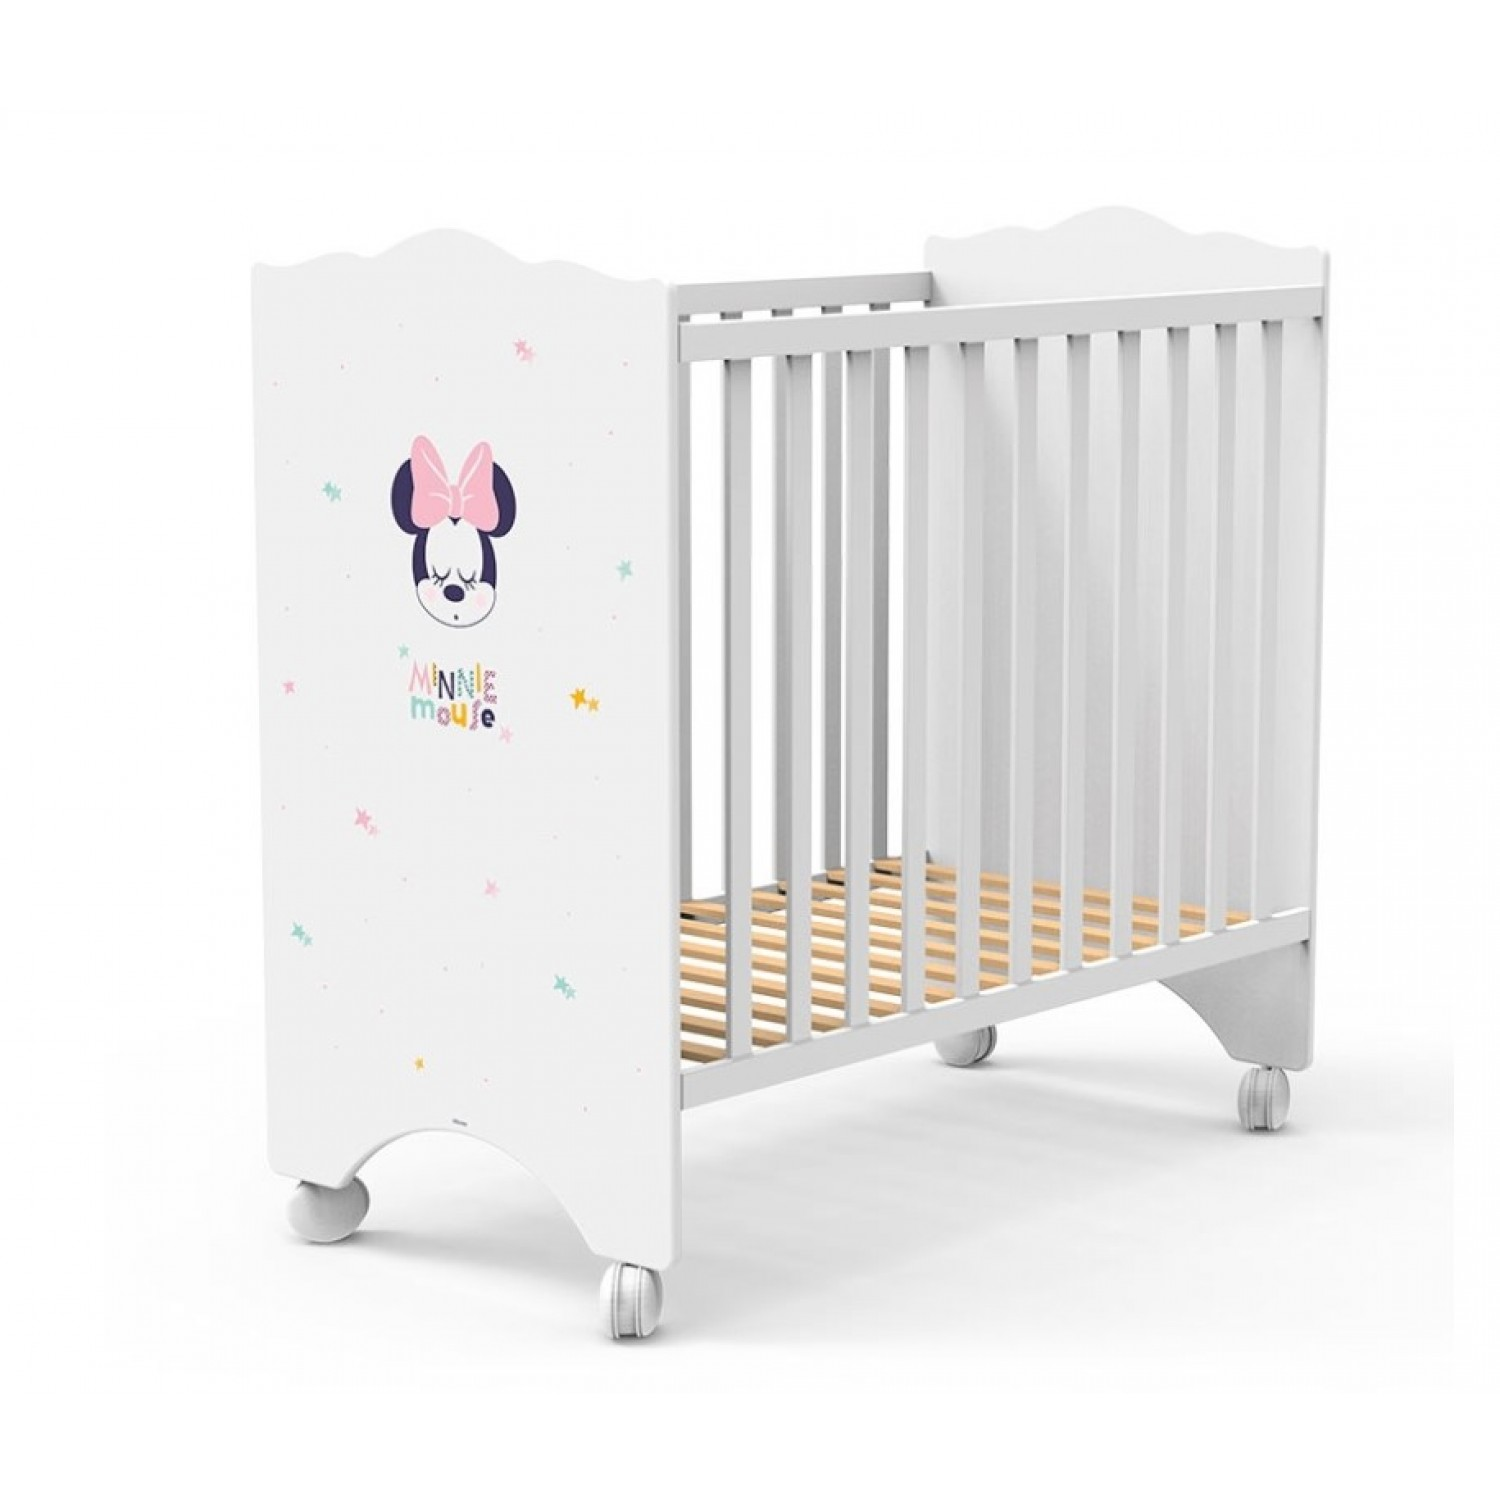 e890639e2d9 Βρεφικό Κρεβάτι-Κούνια Baby Minnie Mouse 120Μx65,5Πx120Υ KR-00232 ΠΑΙΔΙΚΟ  ΔΩΜΑΤΙΟ